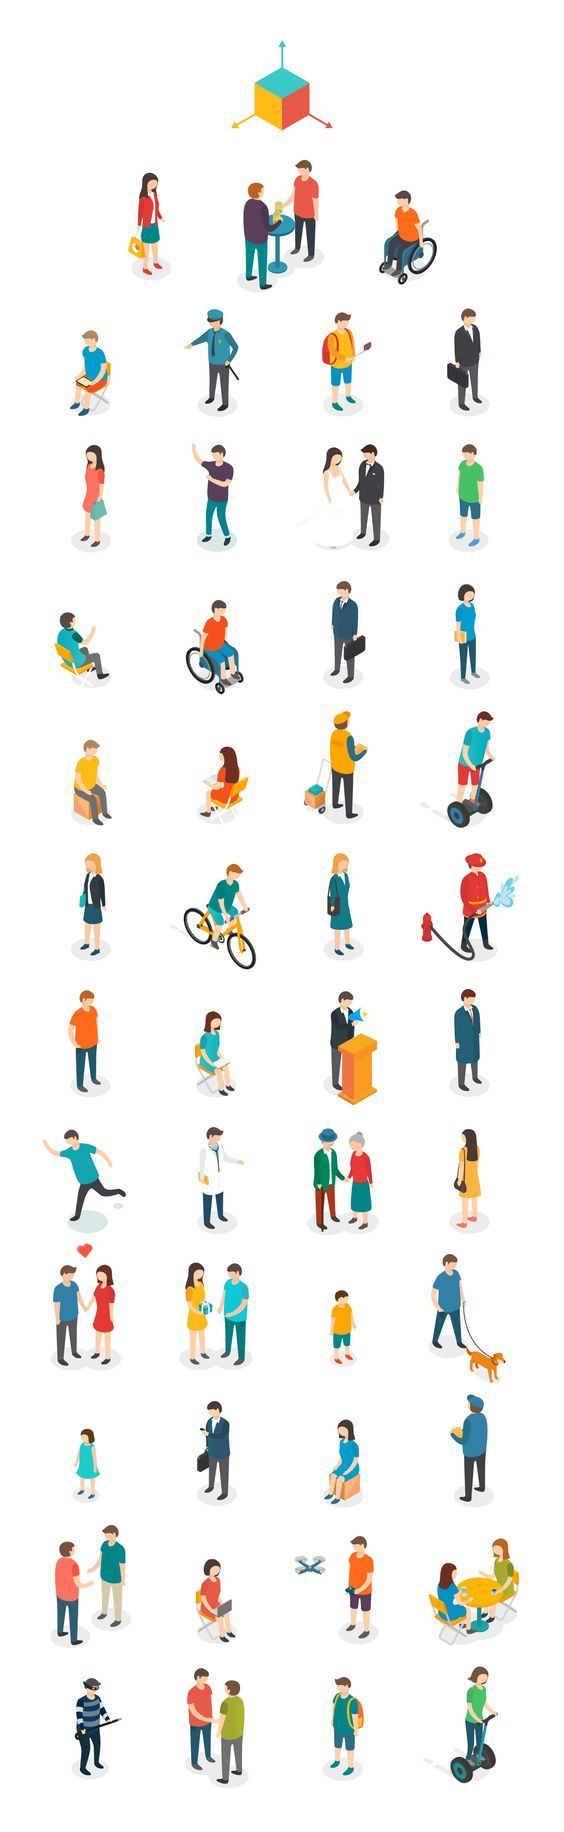 """Isometric People"" // Gleb Tagirov via Behance:"